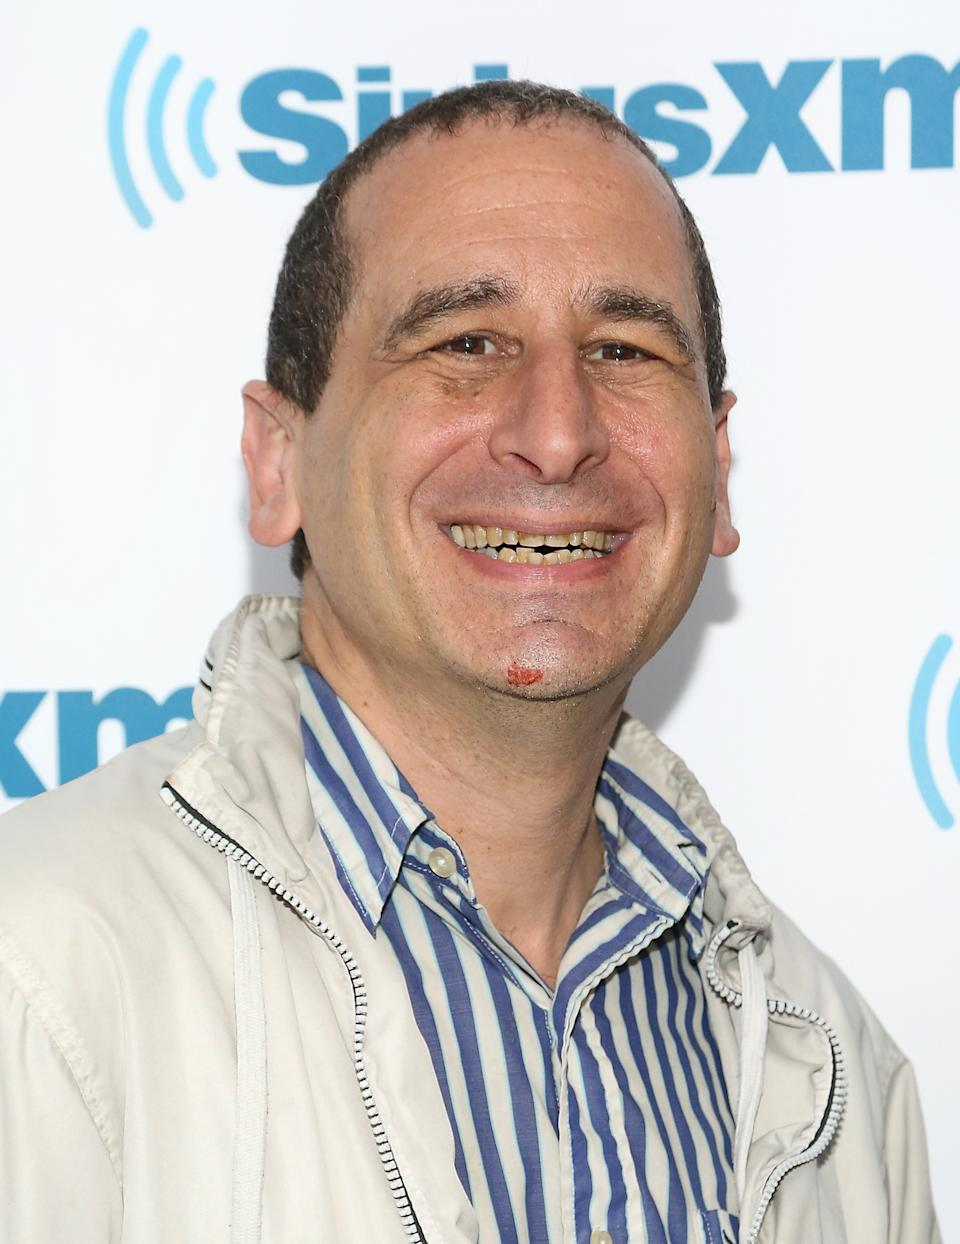 NEW YORK, NY - MAY 01: Writer and producer Mike Reiss visits SiriusXM Studios on May 1, 2015 in New York City.  (Photo by Monica Schipper/Getty Images)